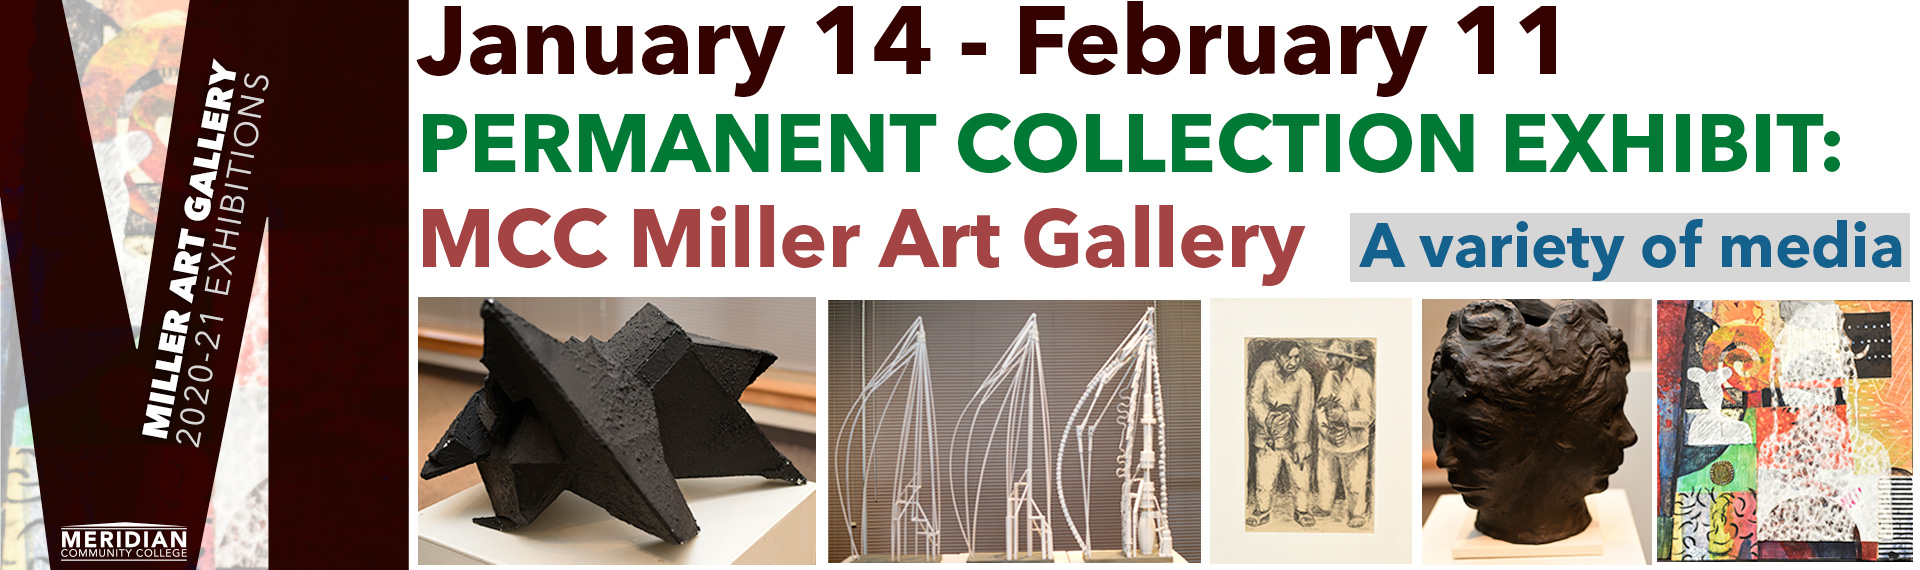 Miller Art Gallery Showing